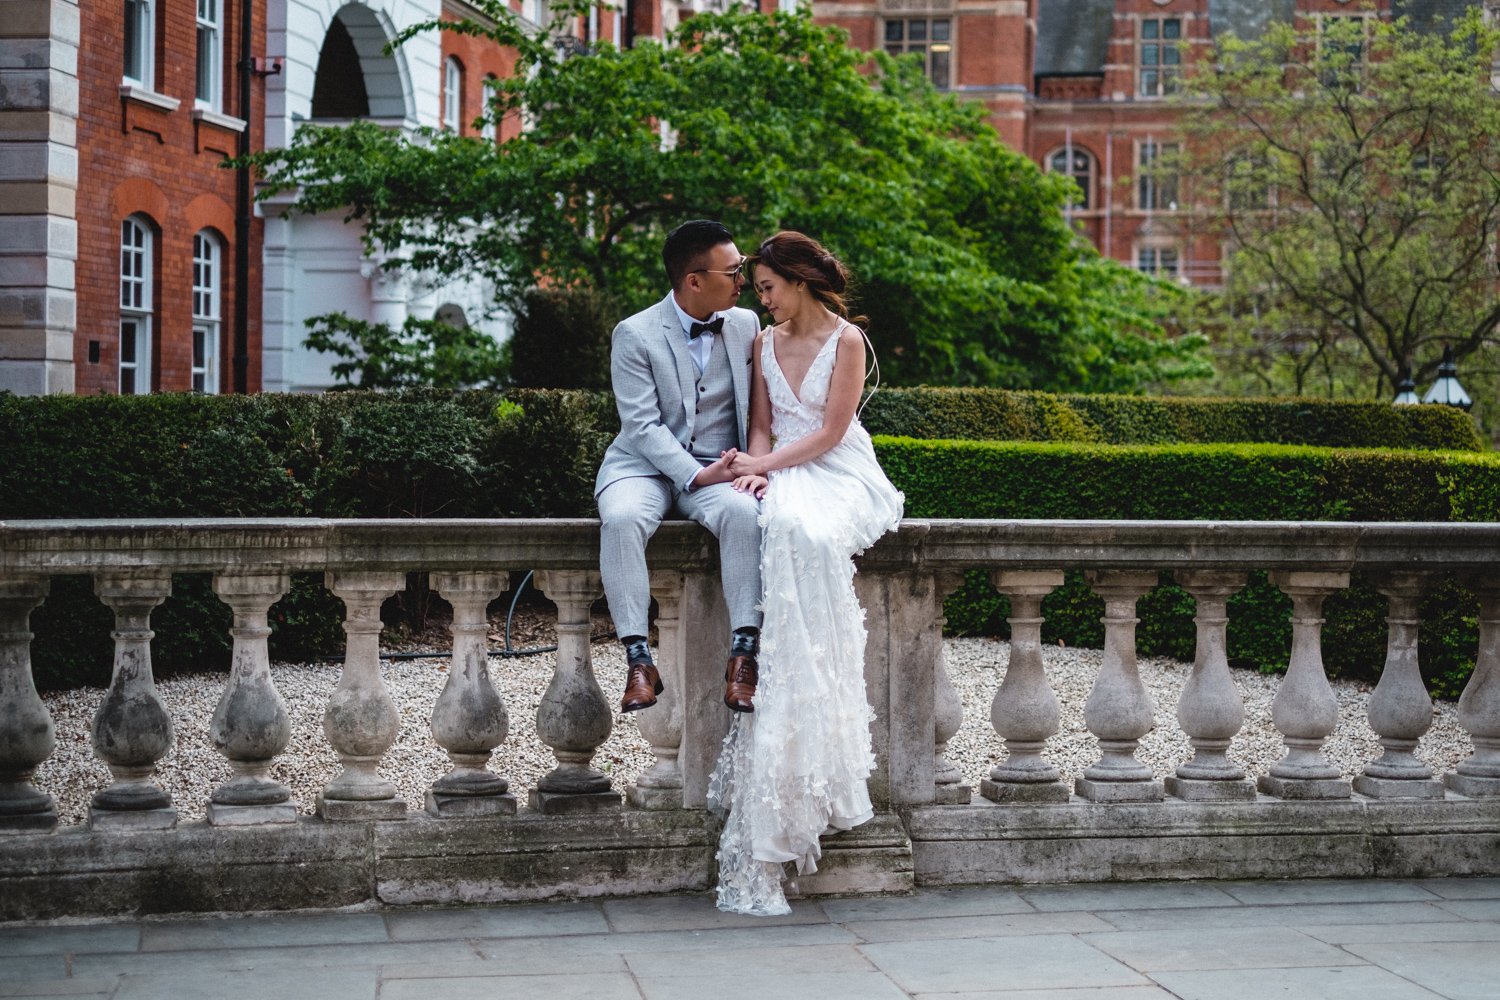 London pre-wedding photos - kensington